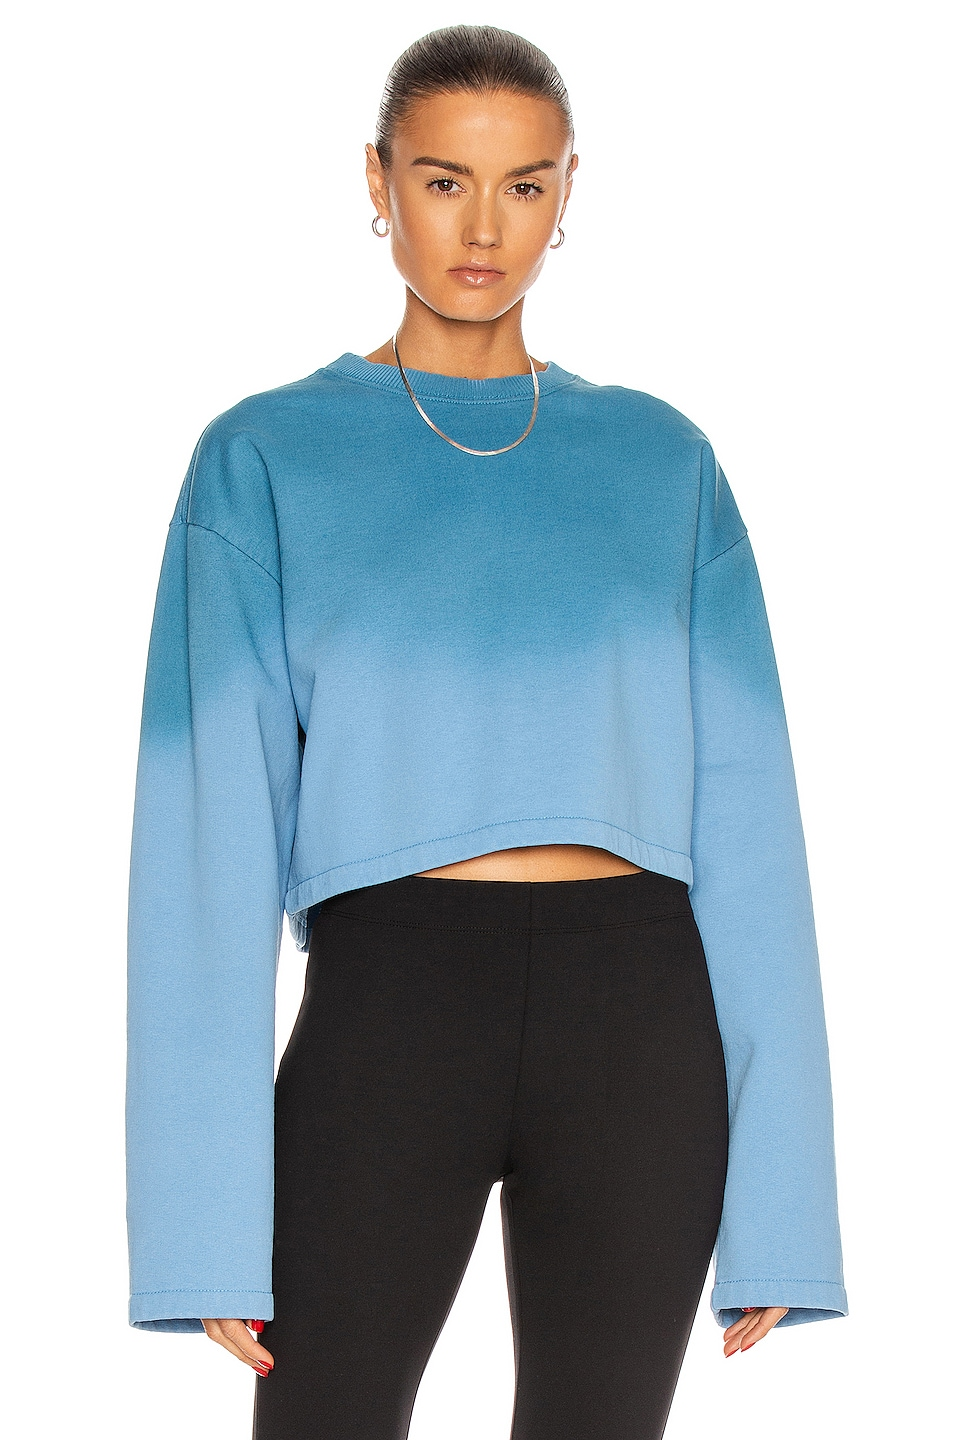 Image 1 of Acne Studios Ombre Cropped Sweater in Aqua Blue & Dusty Blue